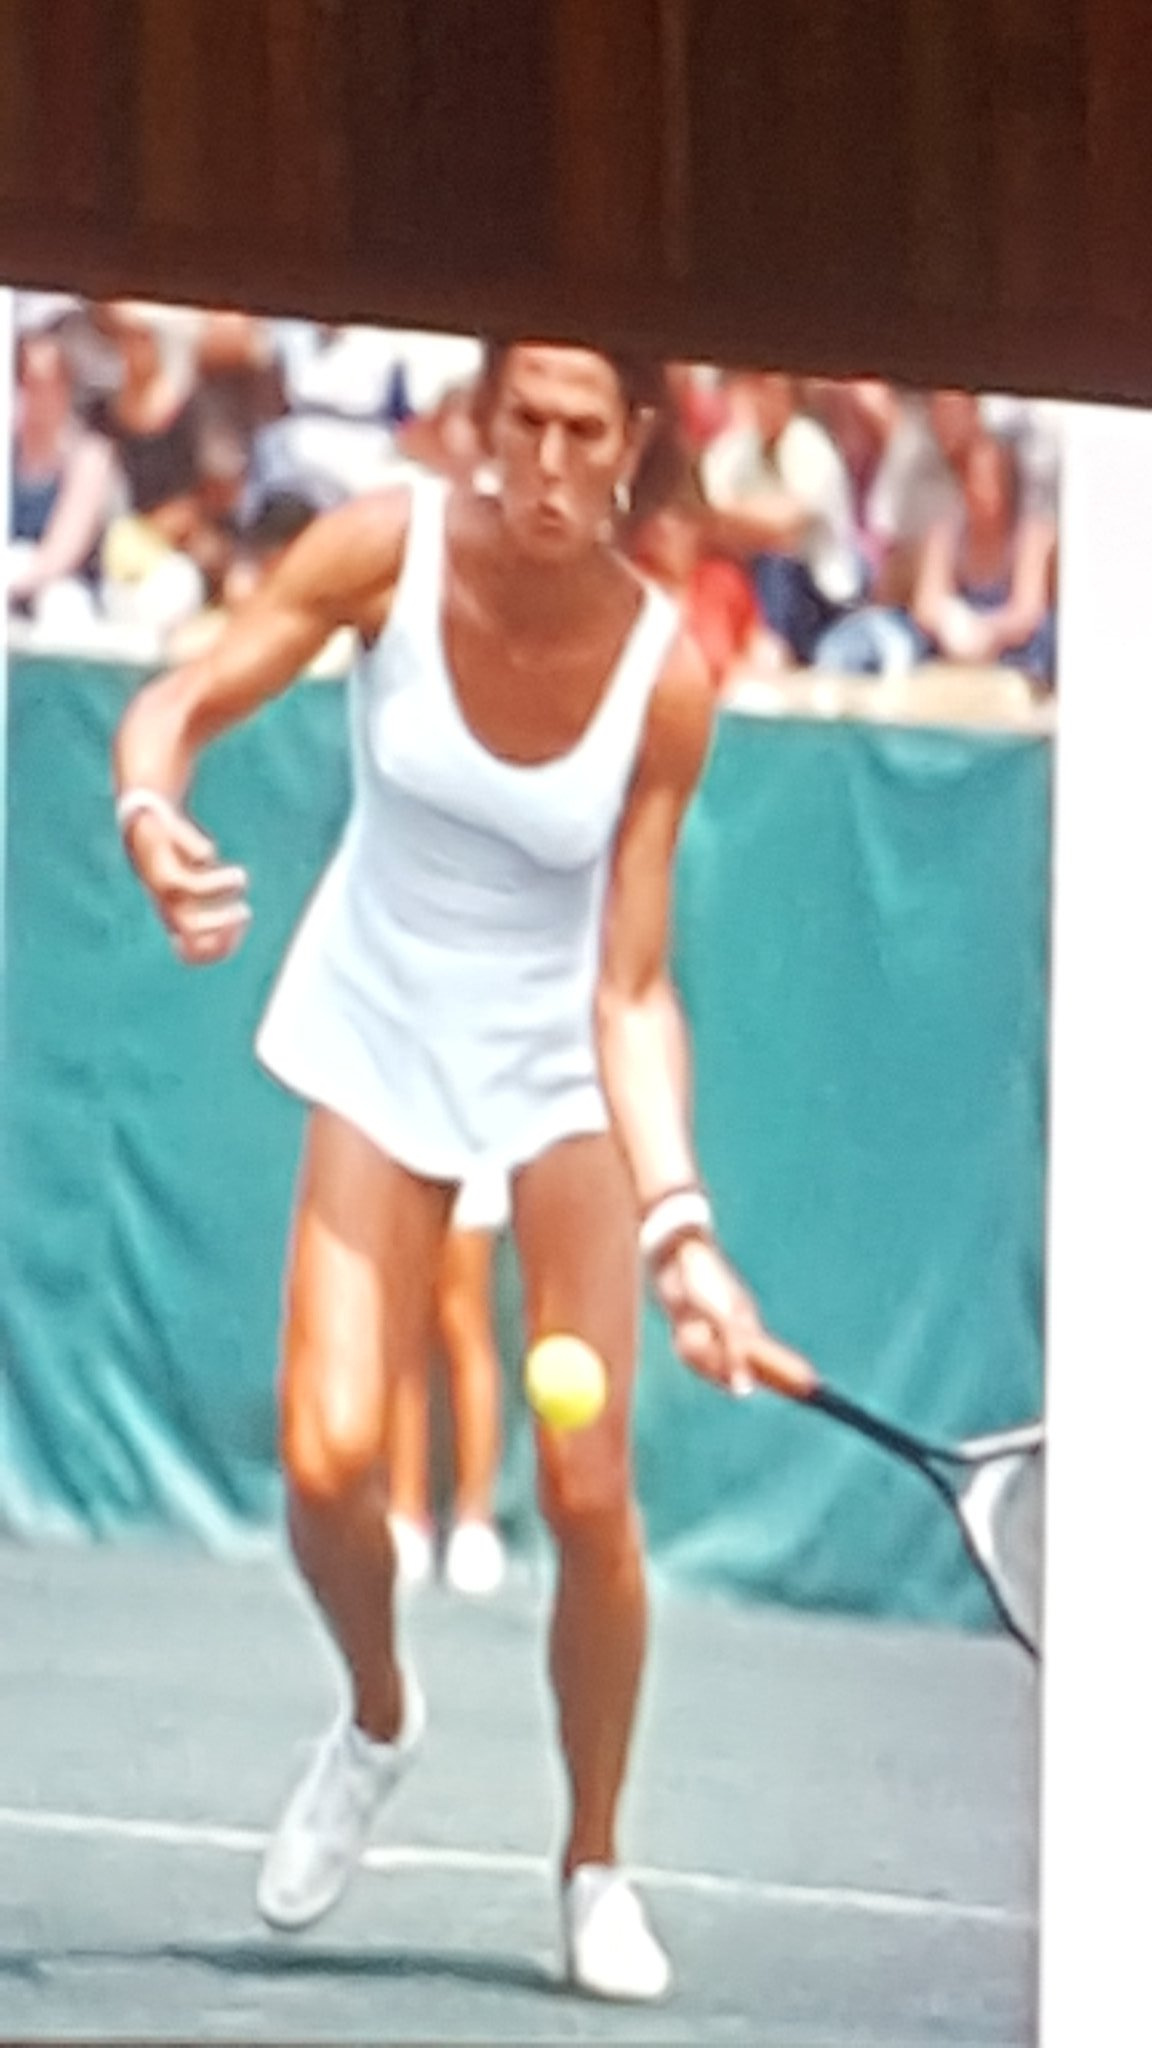 Richard Raskind, later Renee Richards; high-profile transsexual tennis player #empiricalsex https://t.co/jyZvBsMzPe